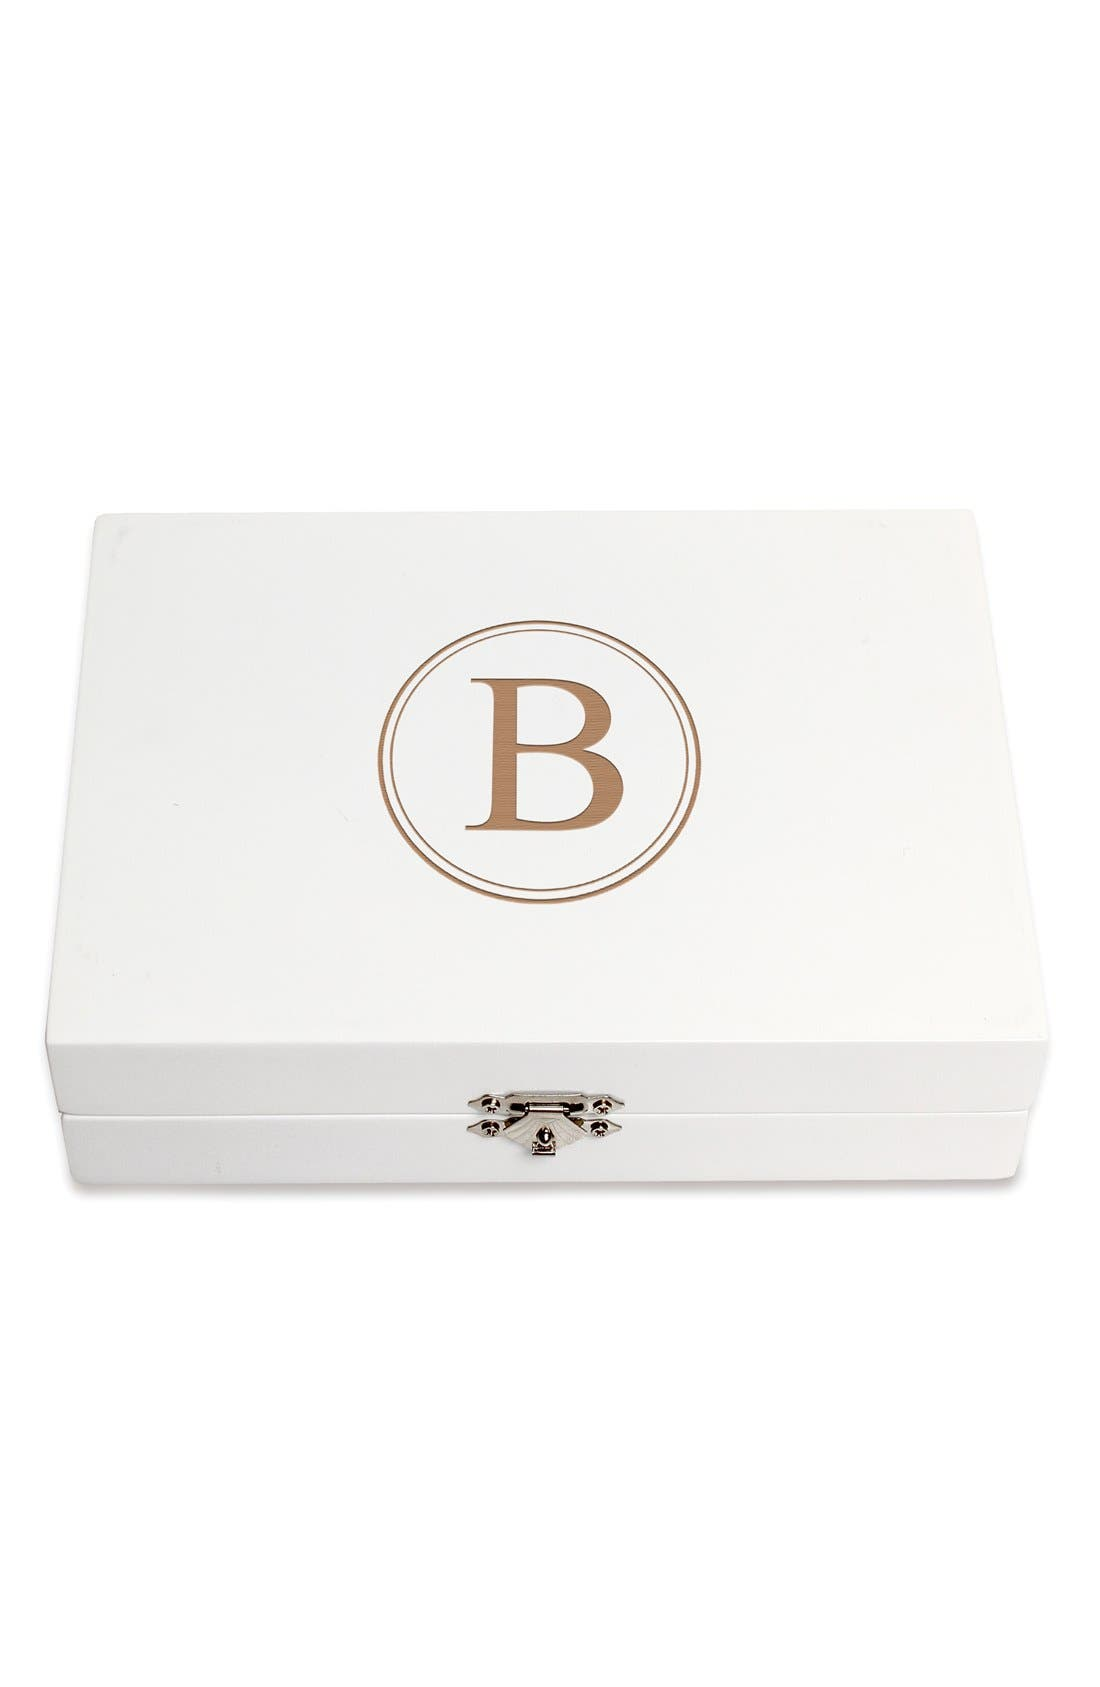 Monogram Wooden Jewelry Box,                             Main thumbnail 31, color,